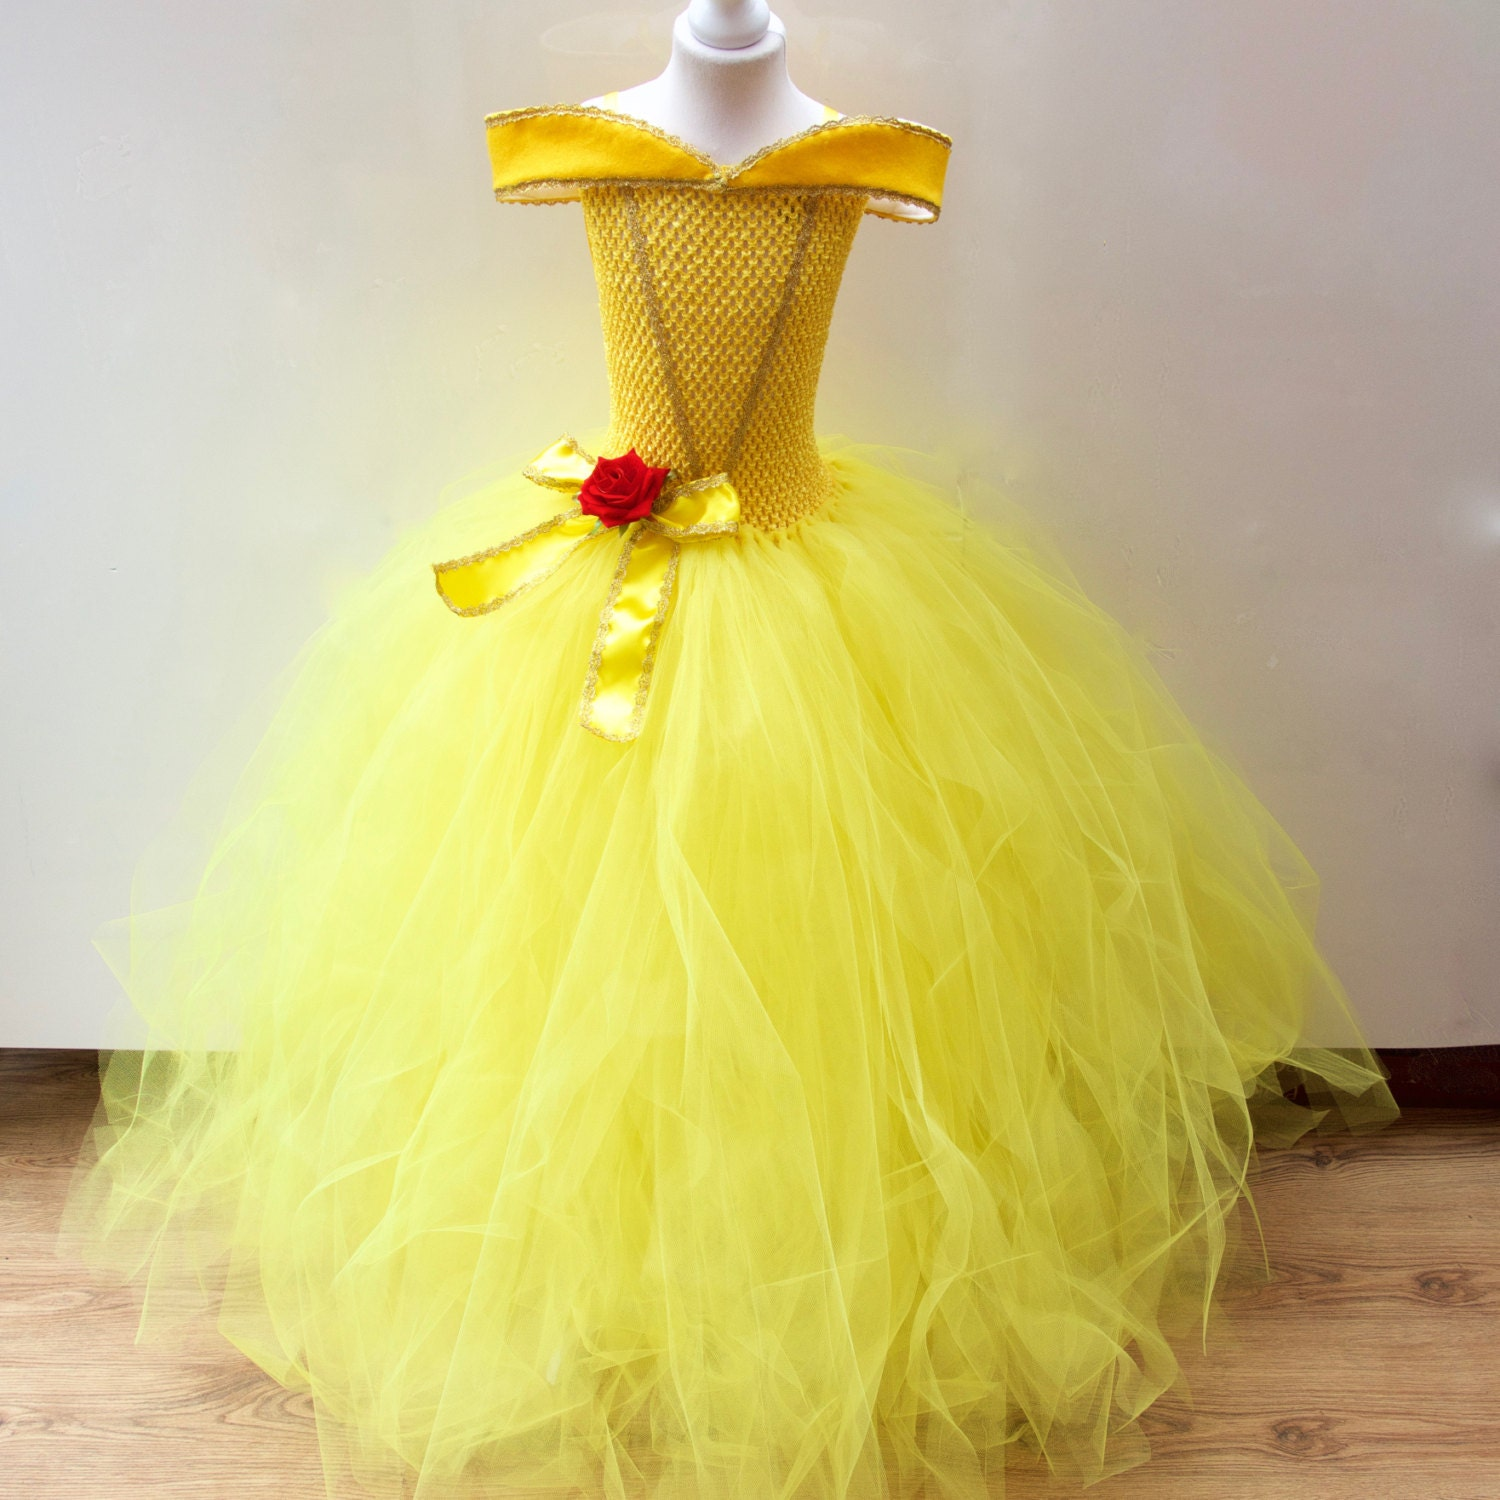 Extrêmement Disney Belle Beauty & the Beast inspired Gown Prom Belle CI28